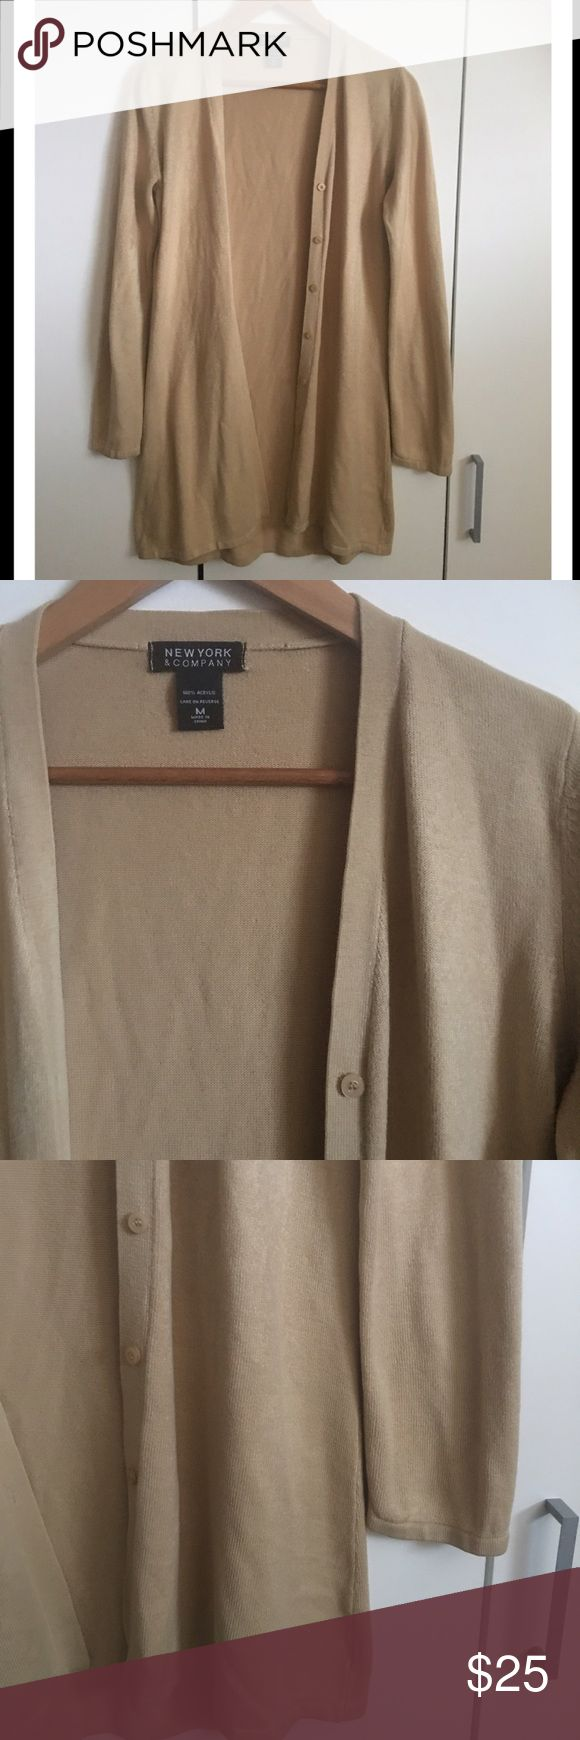 """💥FINAL💥New York & Co. Long Camel Cardigan Beautiful & versatile. Great shape! New York & Co long Camel/tan button down Cardigan. Very soft acrylic. So on trend. Classic. Length 32"""". New York & Company Sweaters Cardigans"""